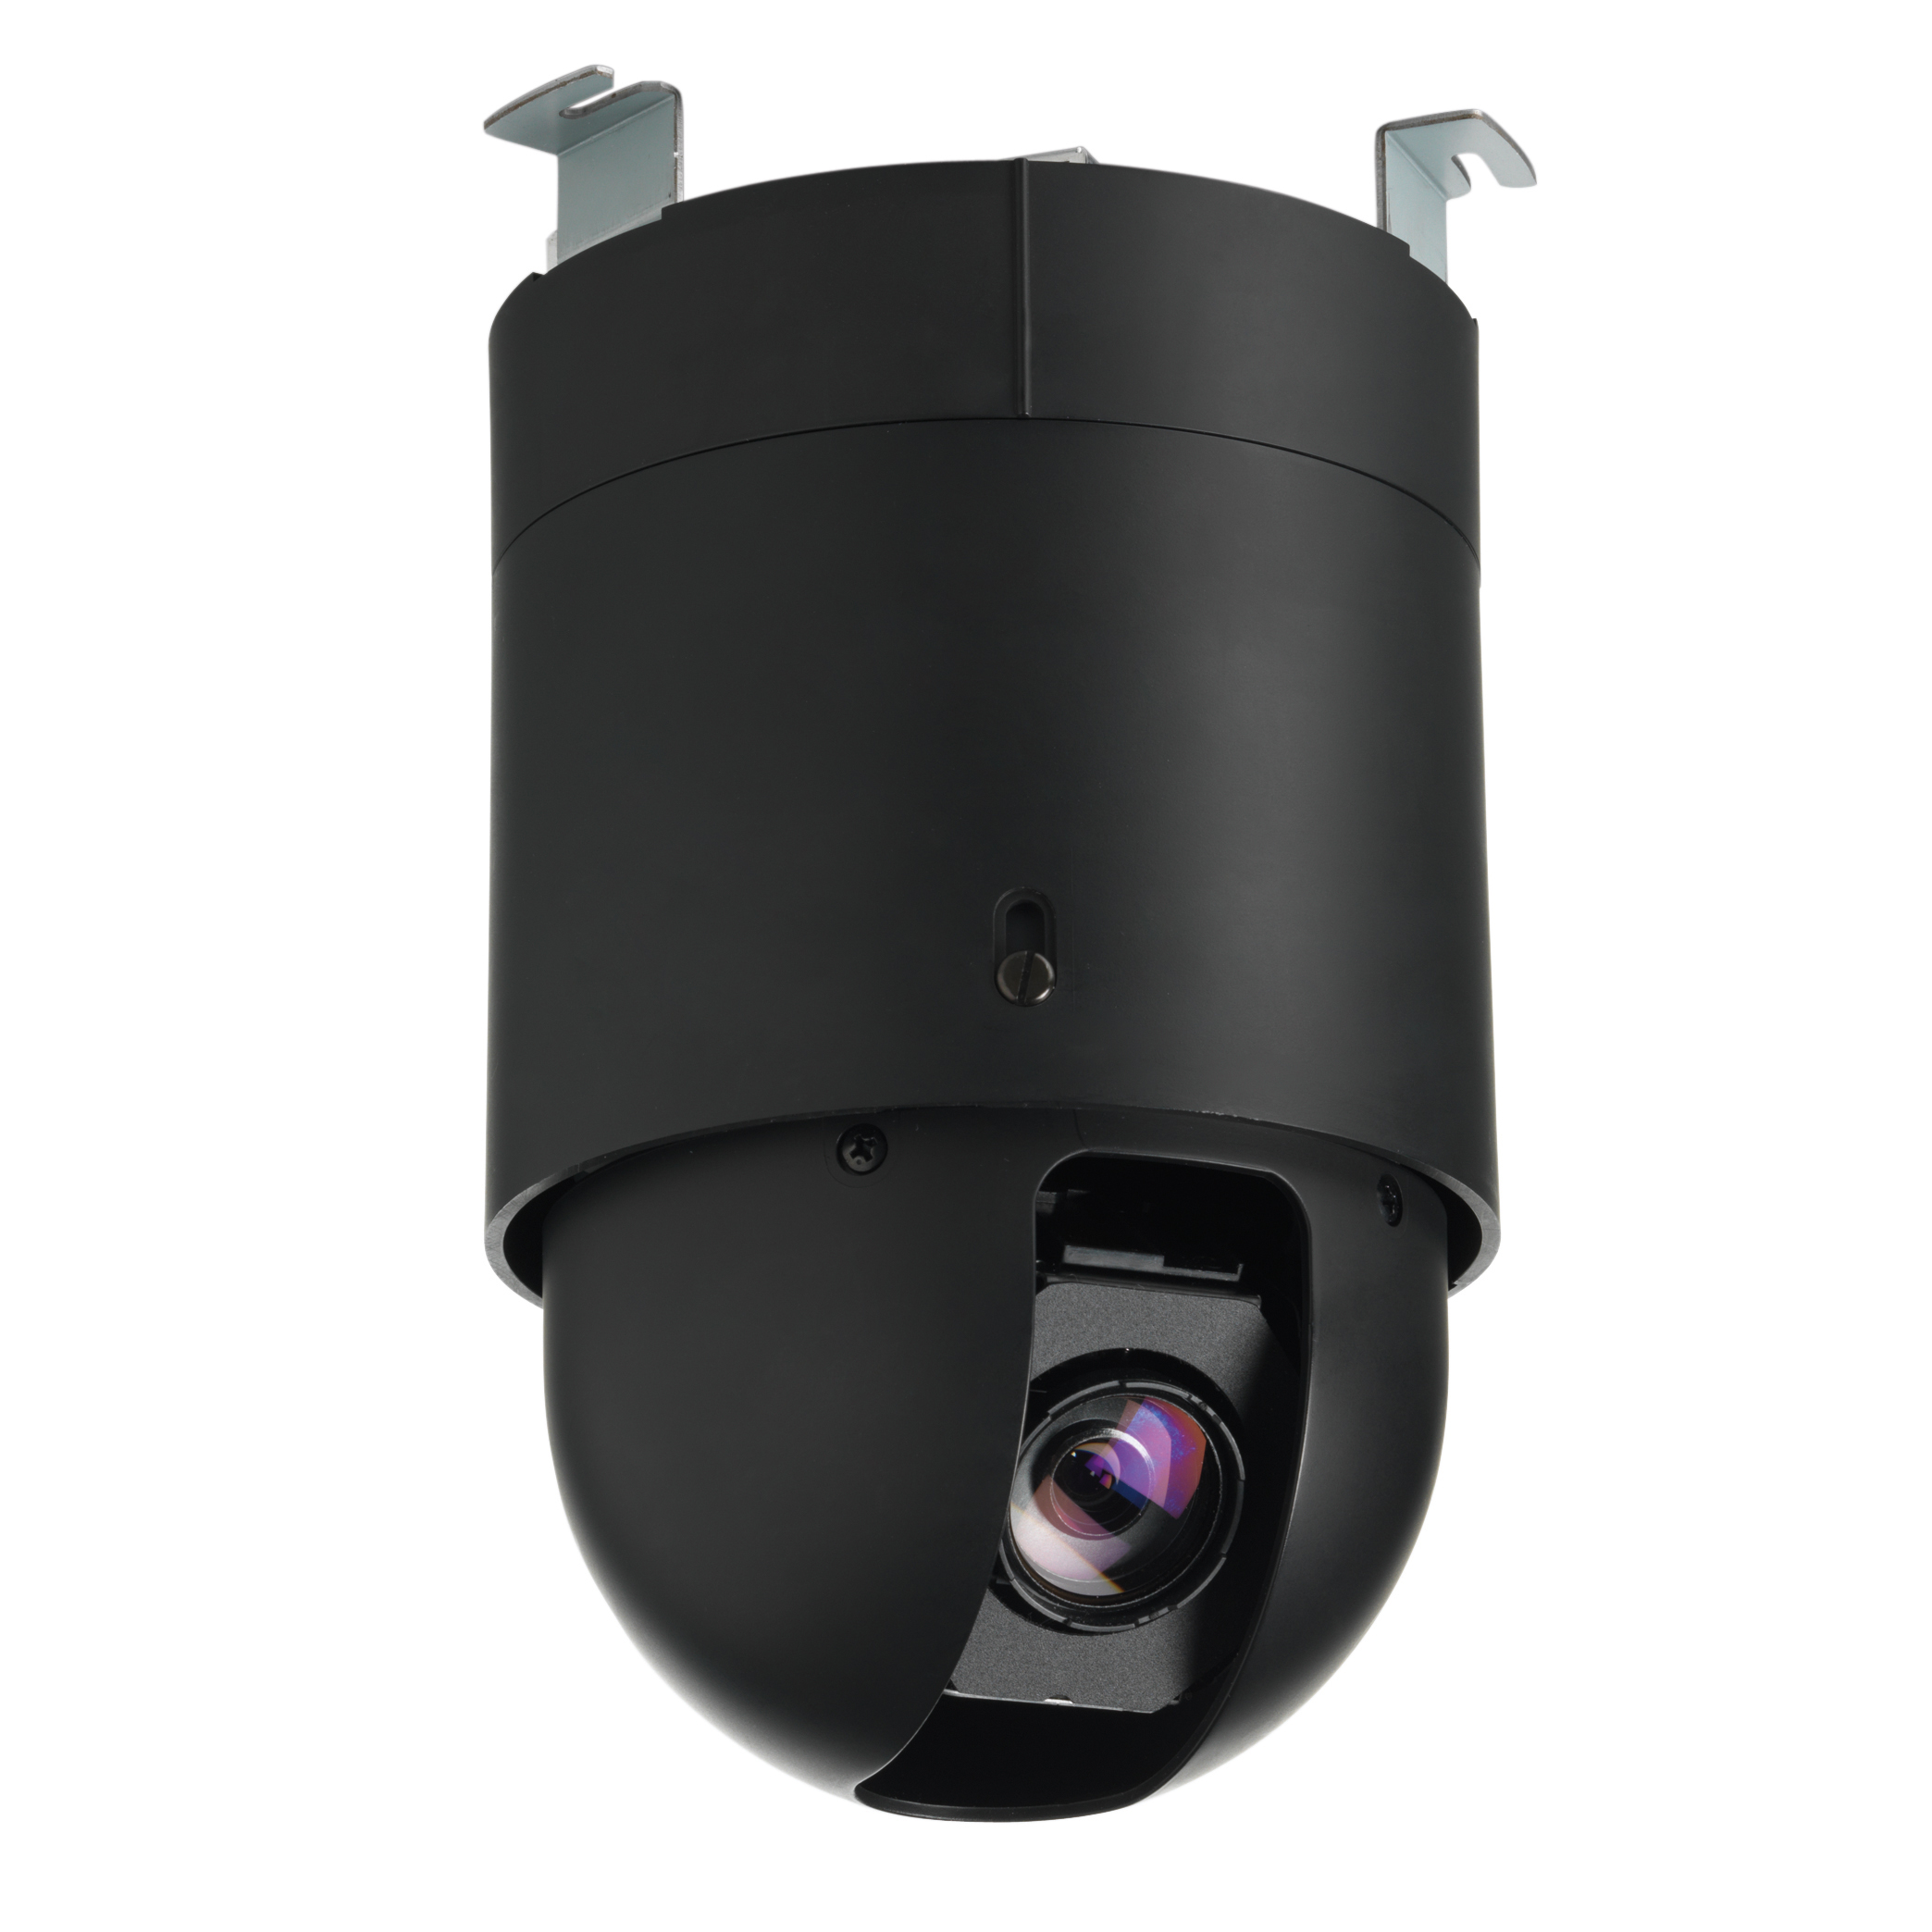 "CCID1445-DN18 1/4"" IP-Highspeed dome"